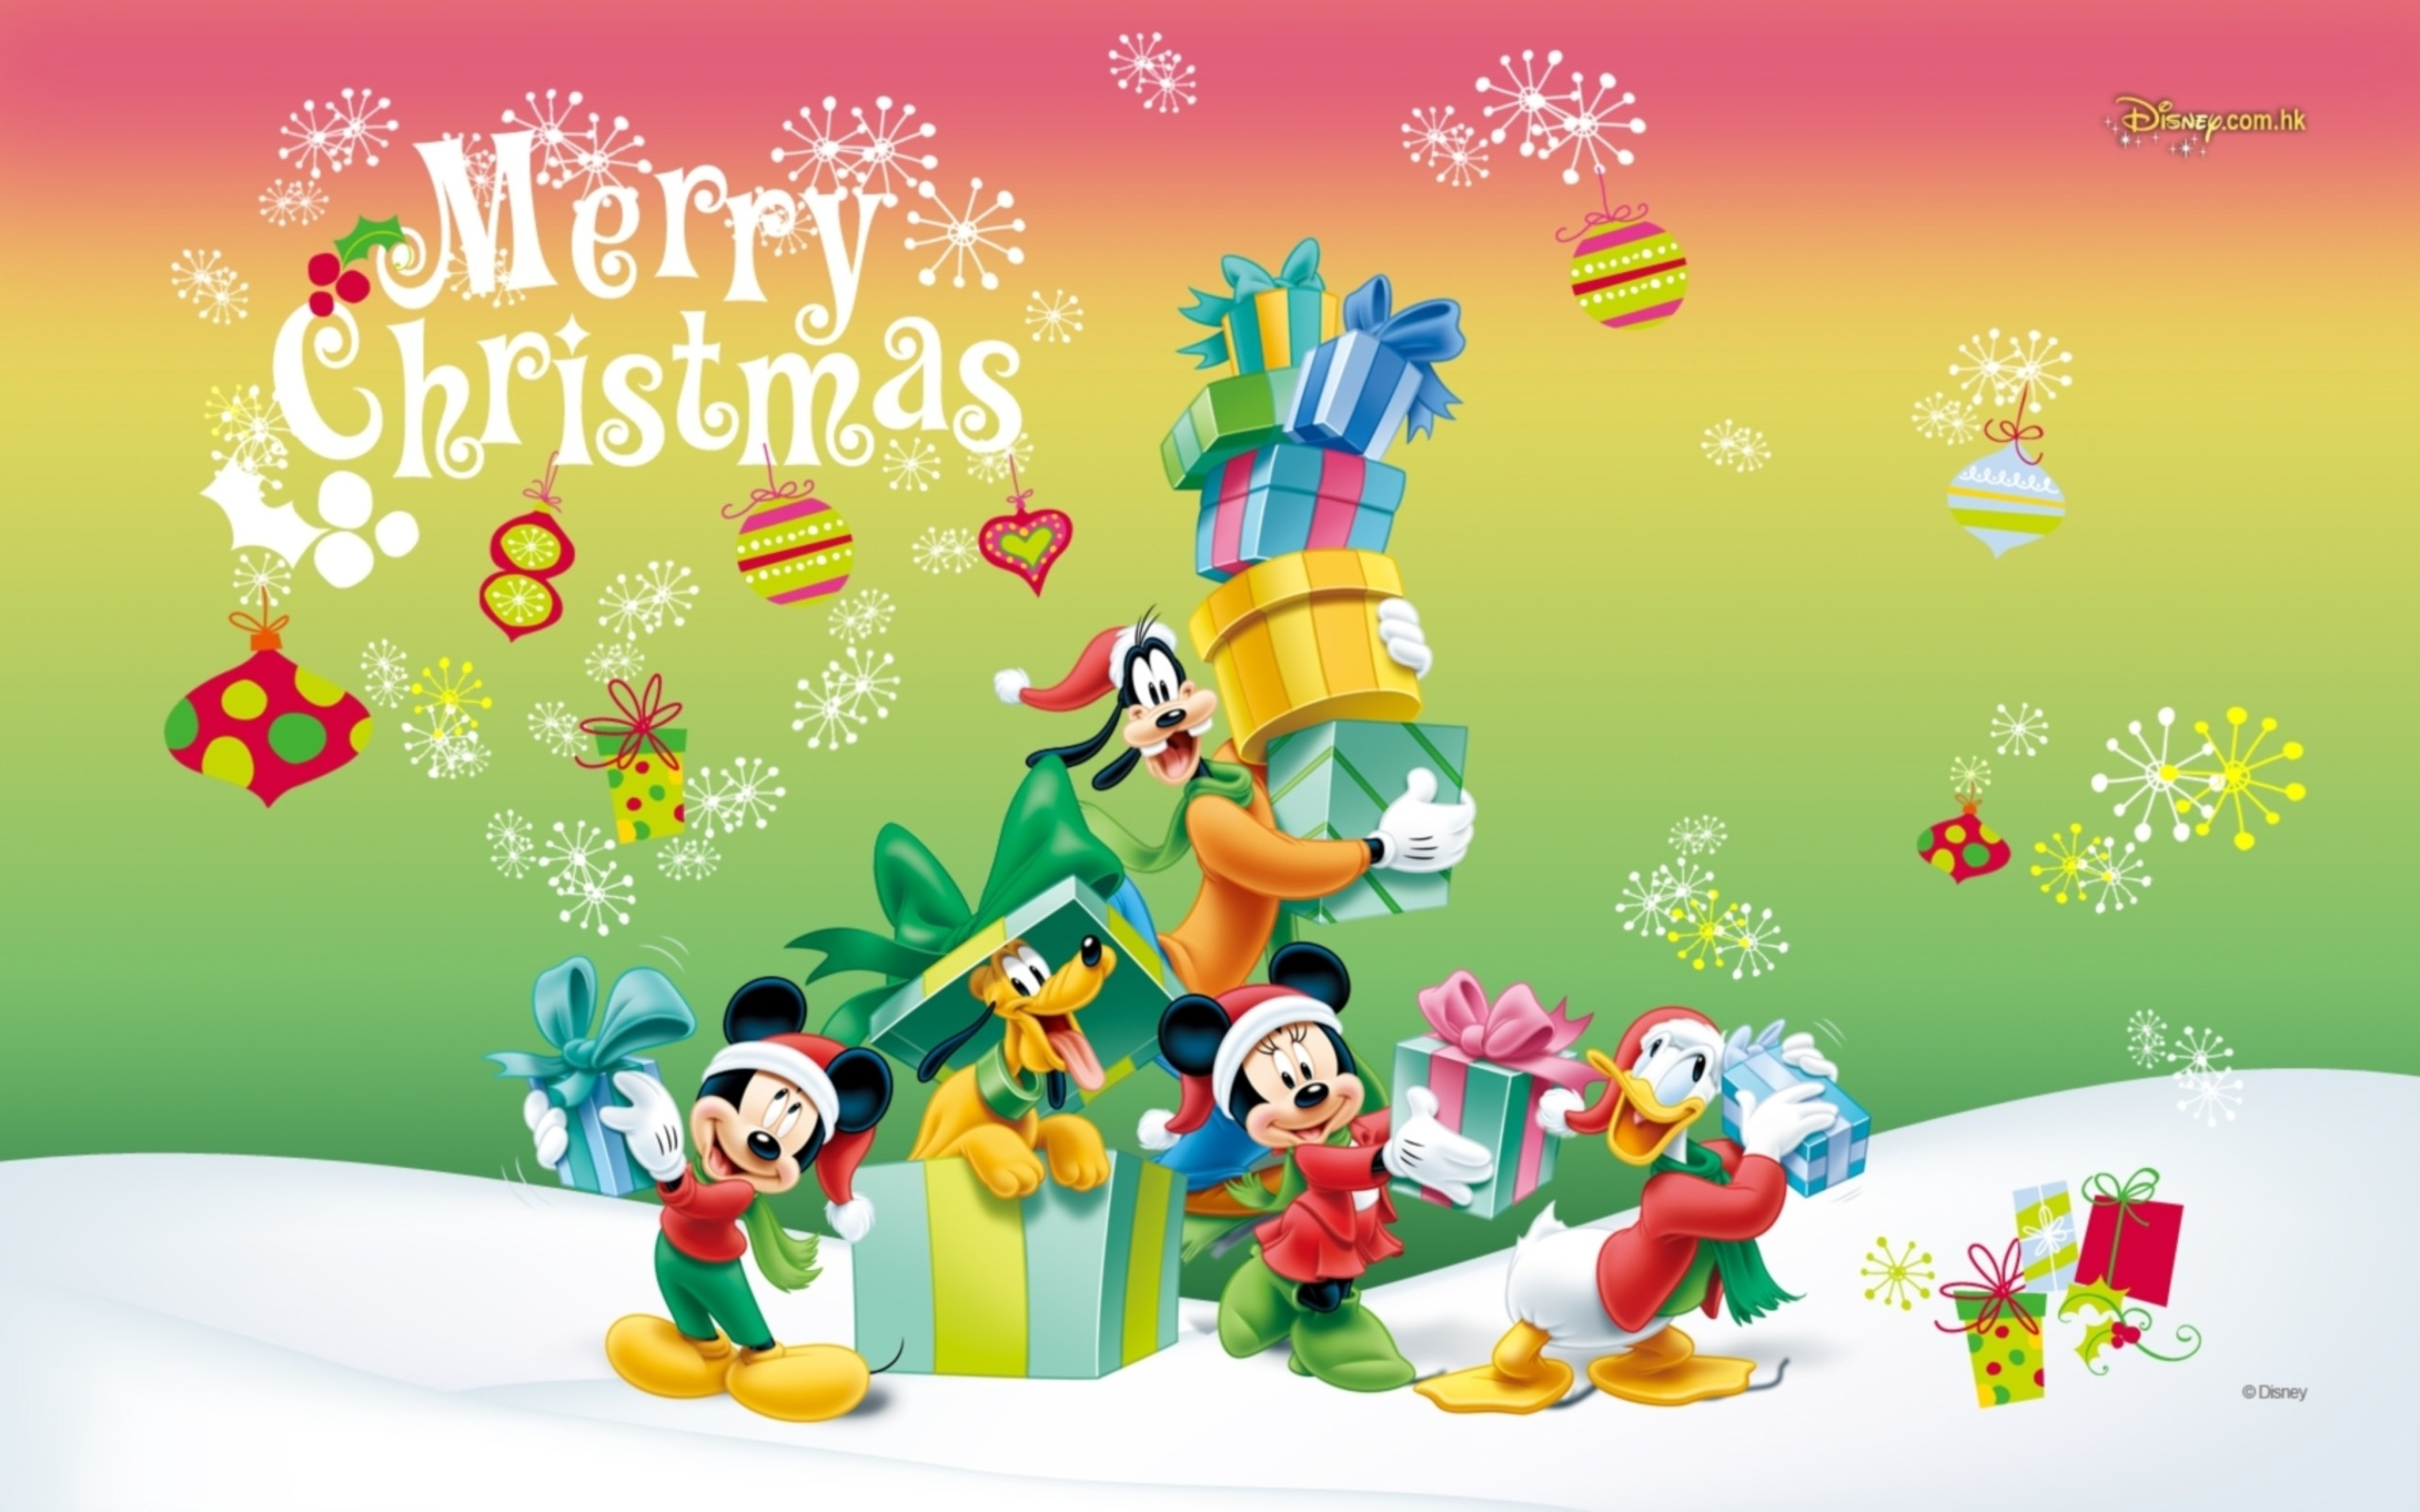 Cartoon characters on Christmas wallpapers and images – wallpapers .